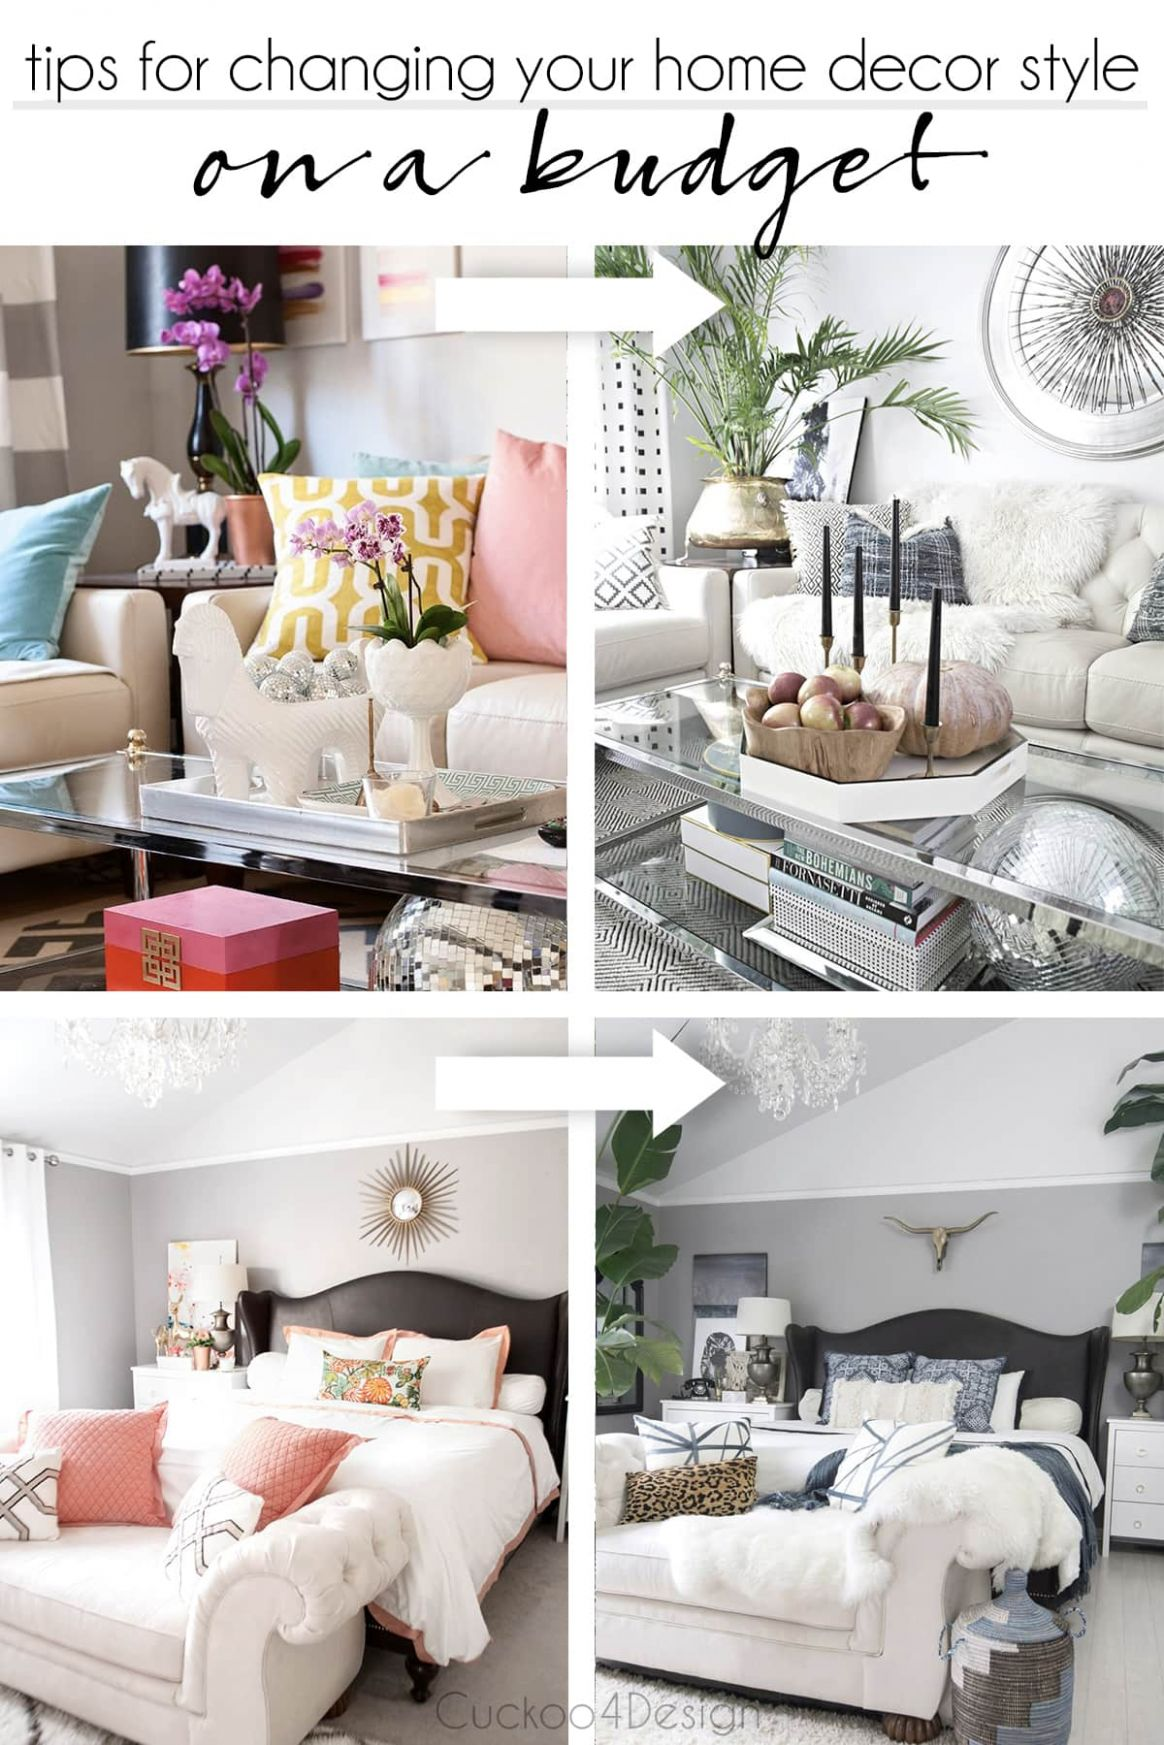 Changing your home decor style on a budget | Cuckoo11Design